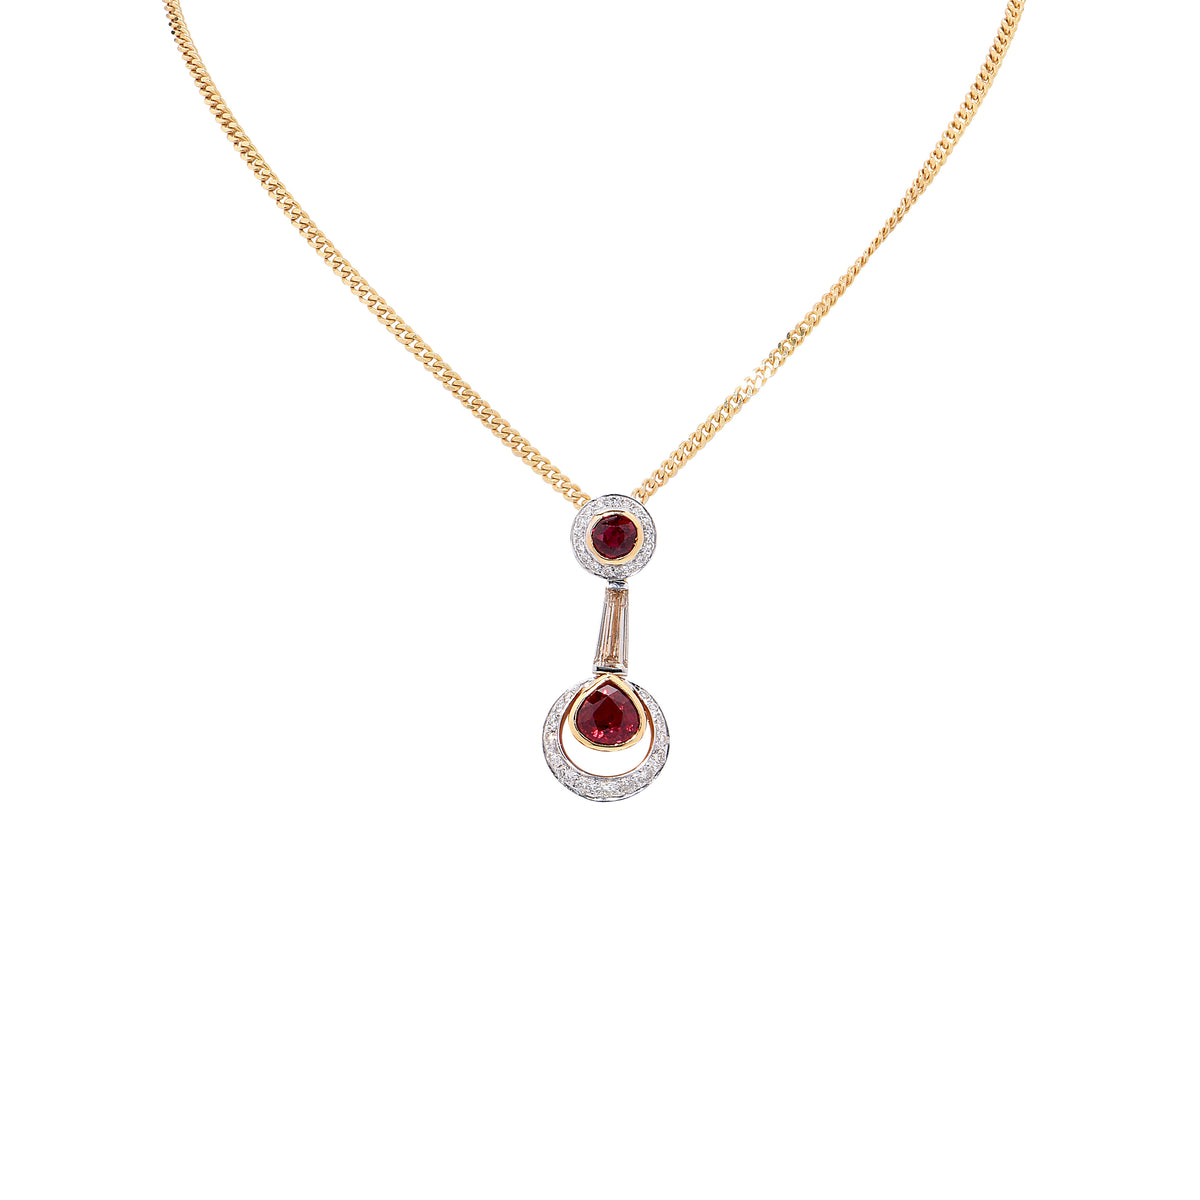 Ruby and Diamond 18 Karat Yellow and White Gold Pendant